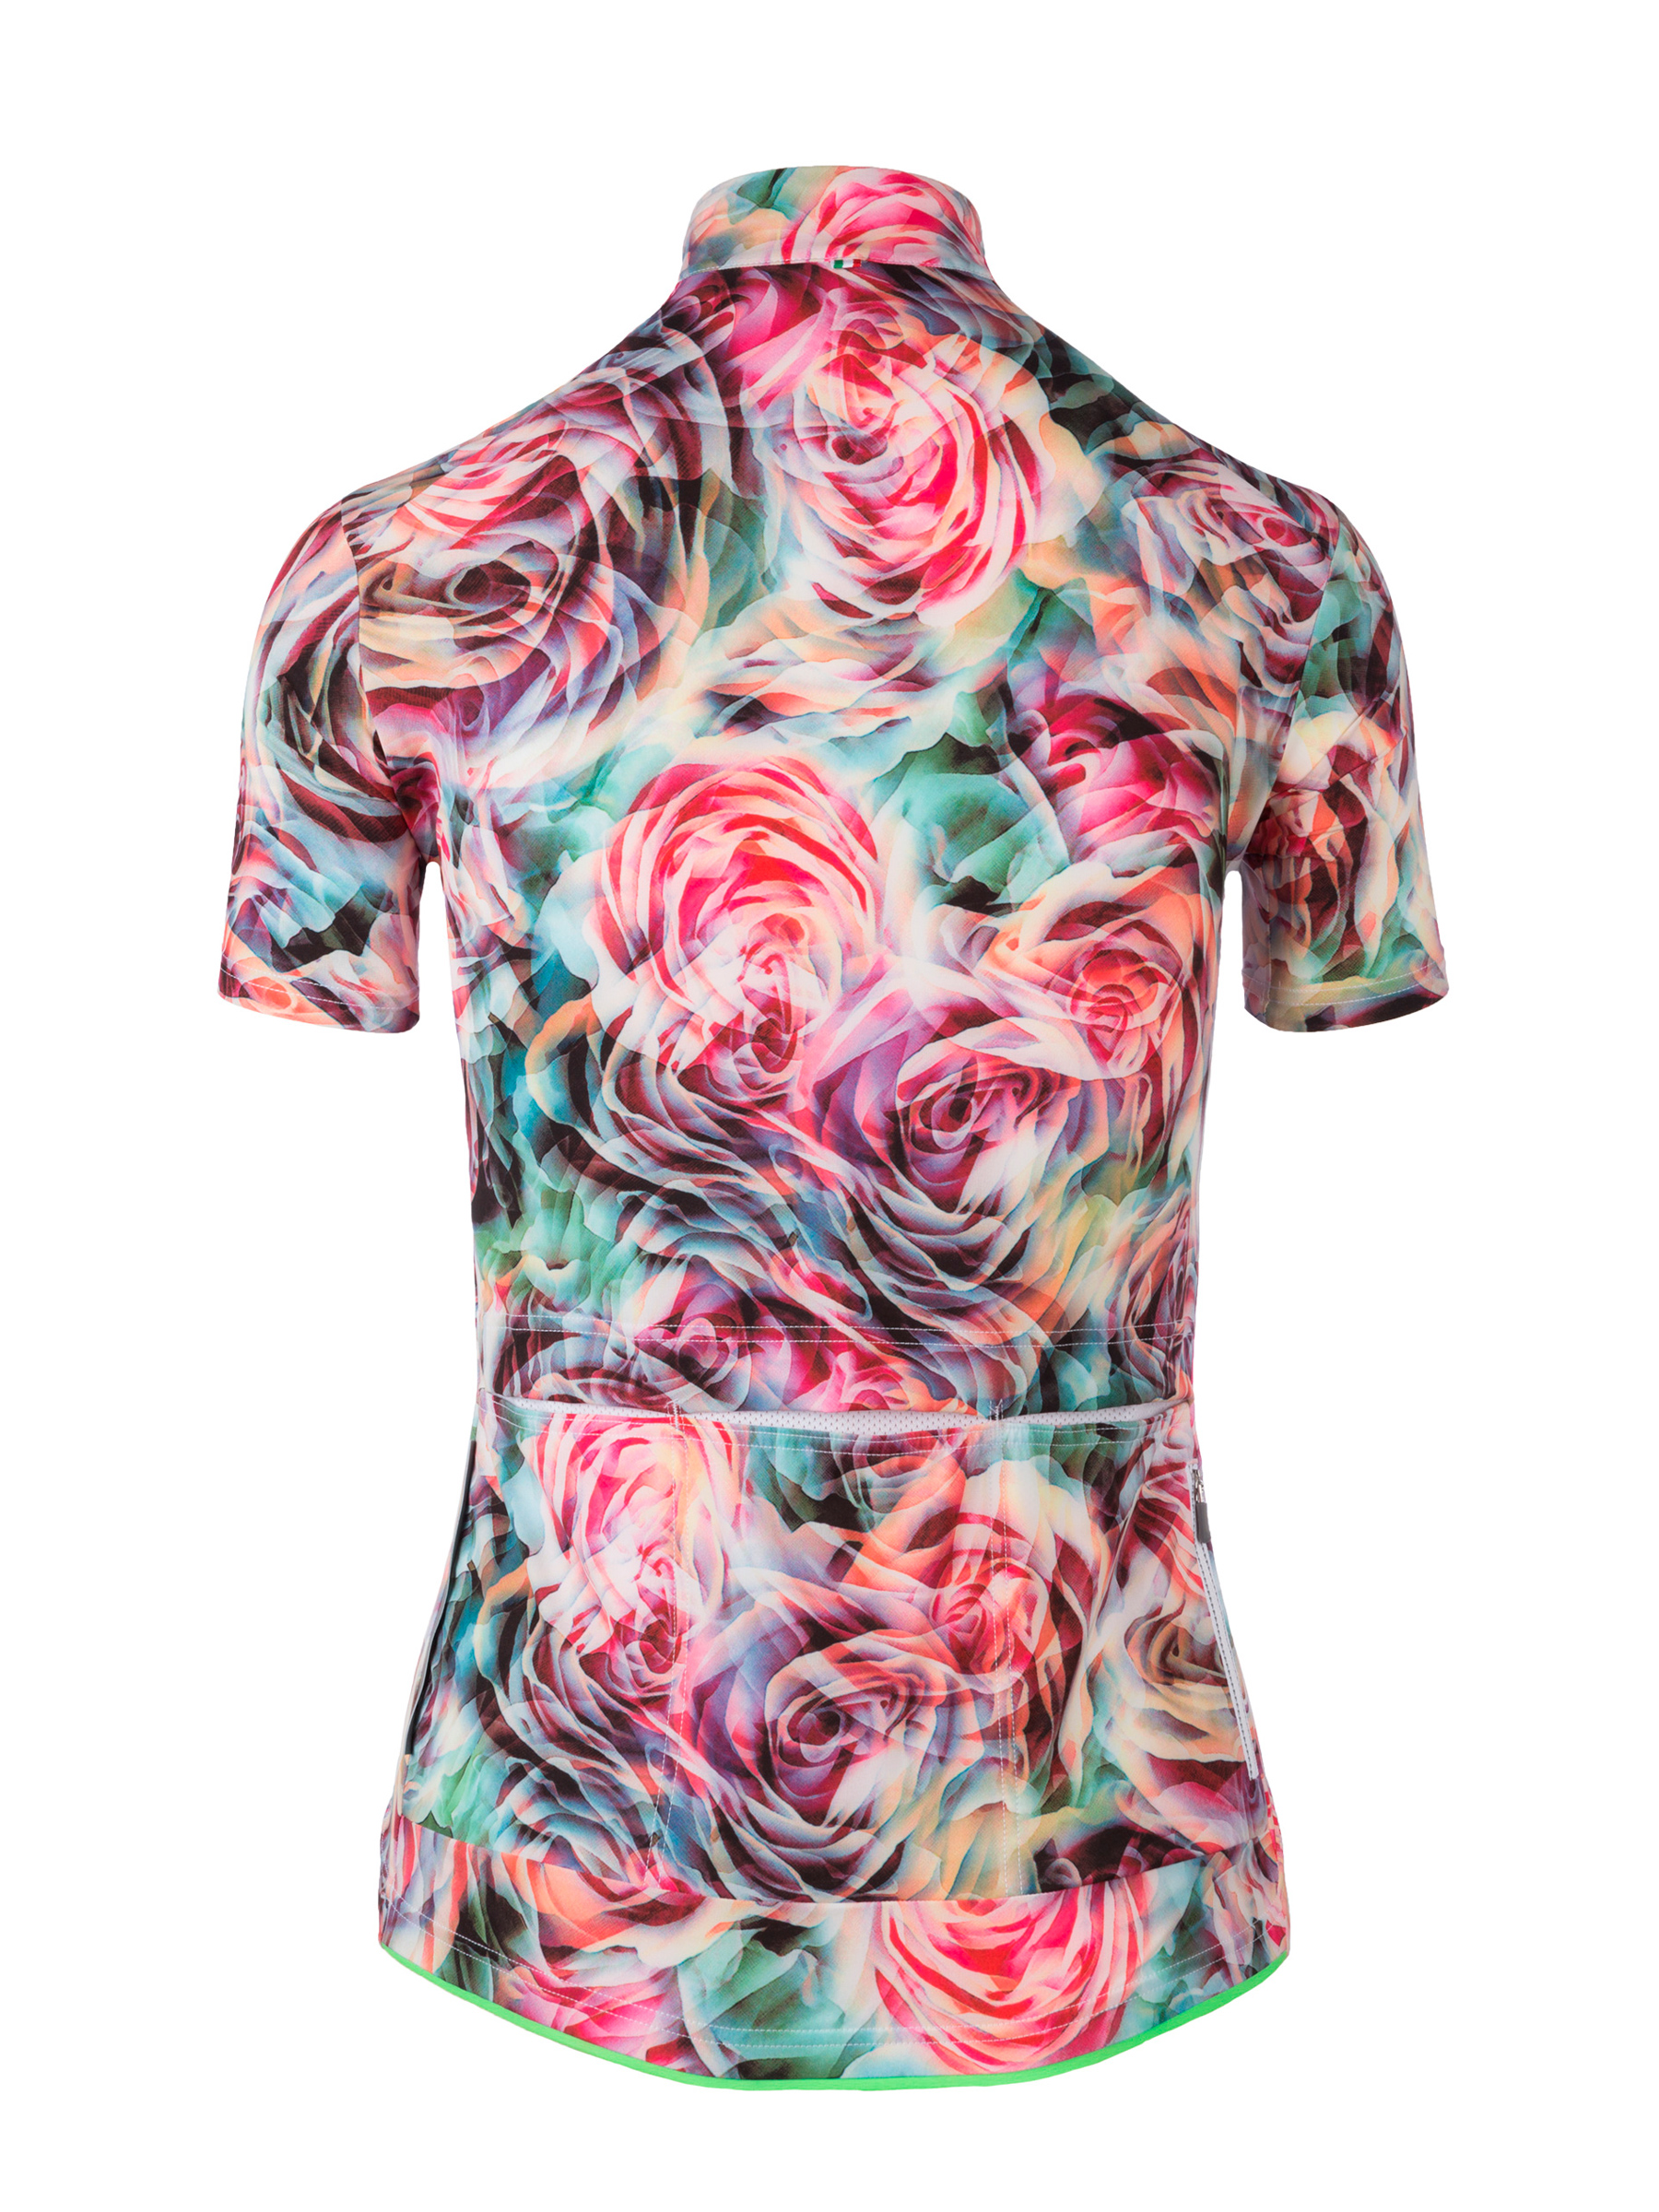 Jersey short sleeve L1 lady Rose 3D